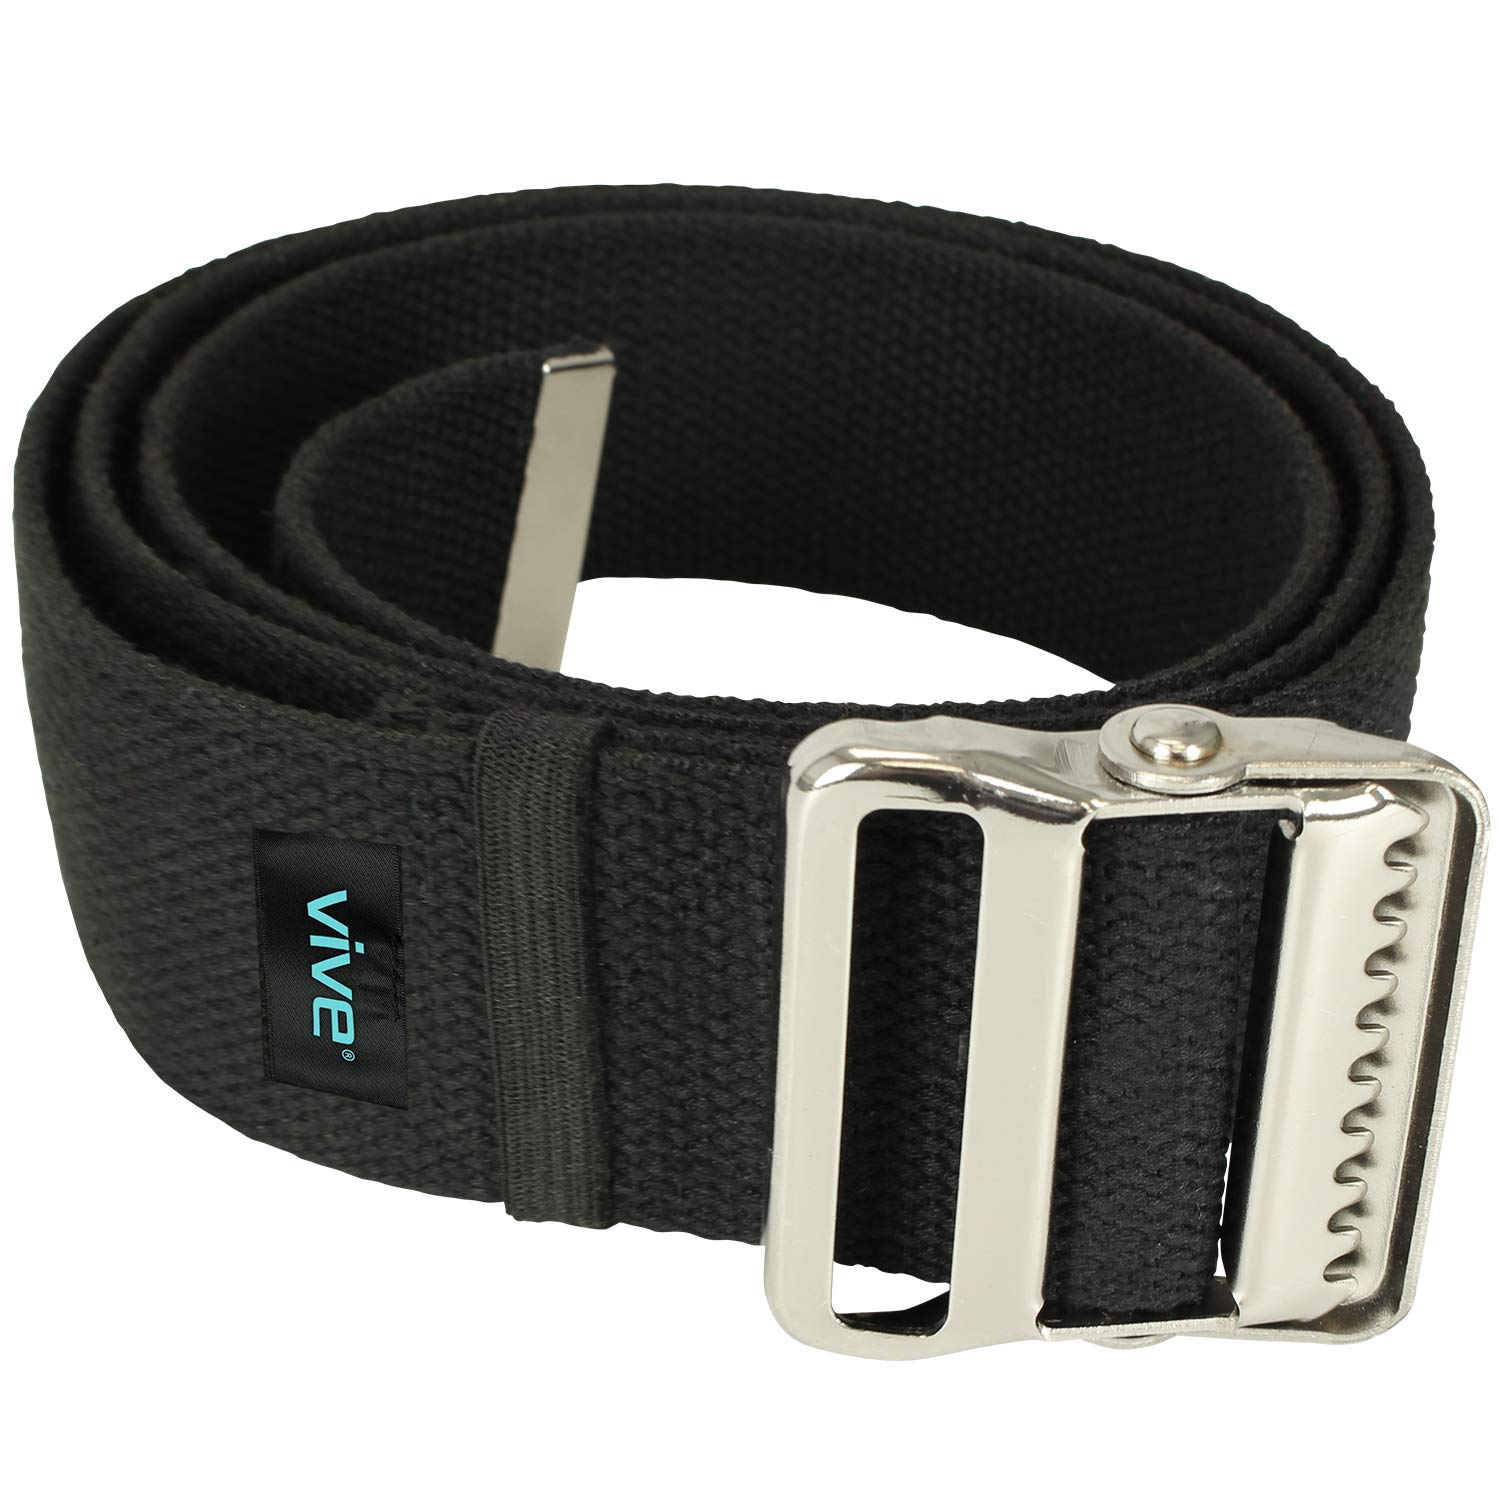 Vive Gait Belt (60 Inch) - Transfer Assist Device for Seniors, Elderly, Pediatric, Bariatric, Occupational and Physical Therapy - Medical Nursing Safety Long Gate Strap with Quick Release Metal Buckle